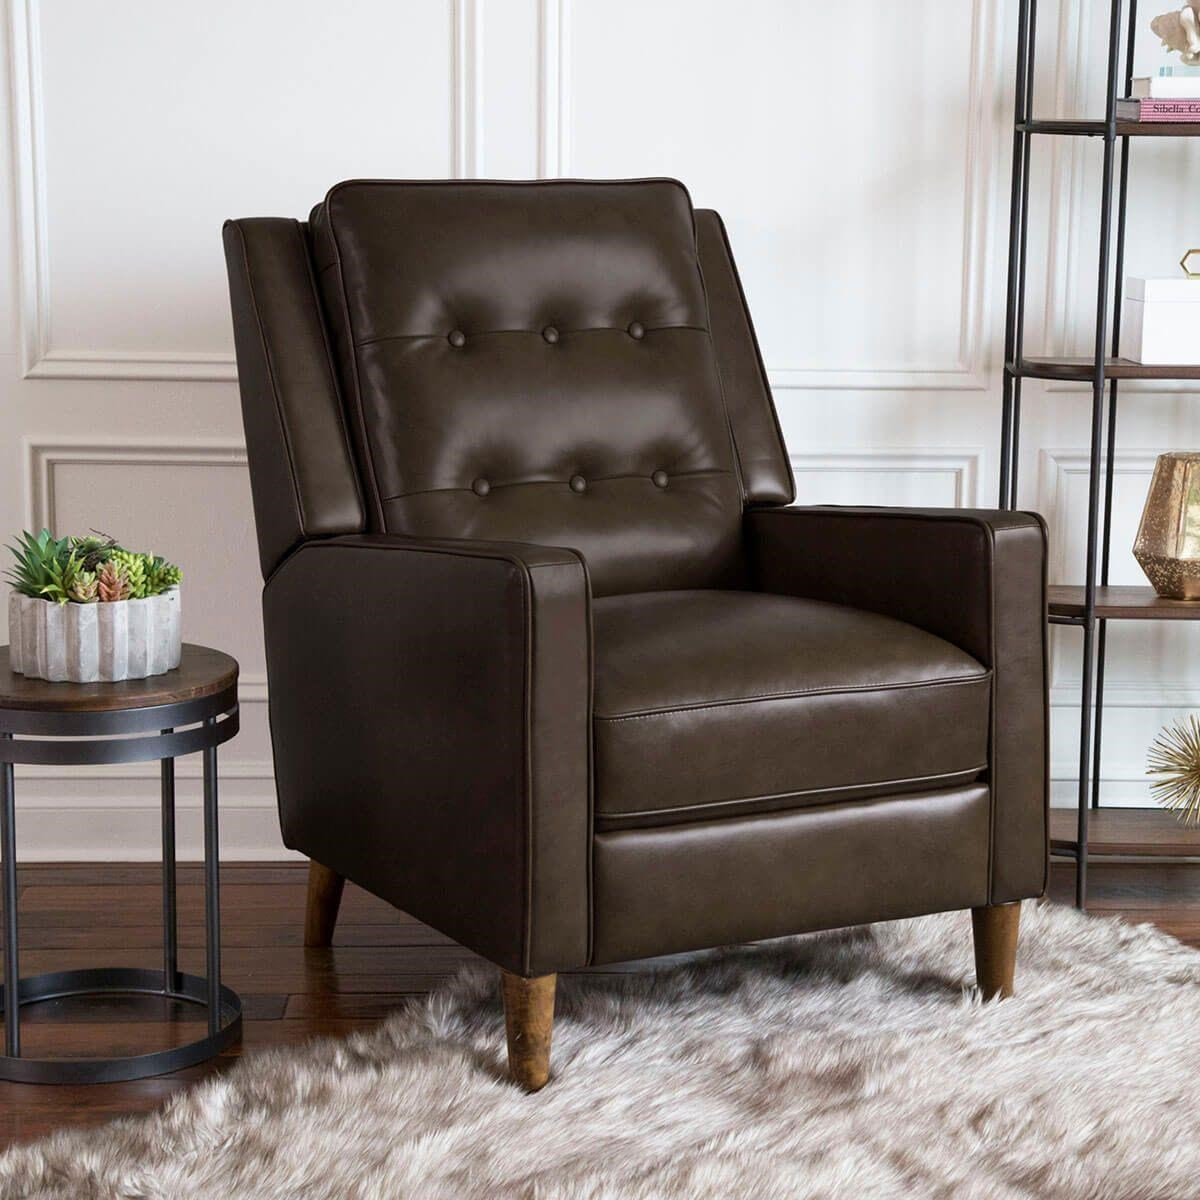 Francine Francine Leather Match Recliner by Abbyson at Morris Home